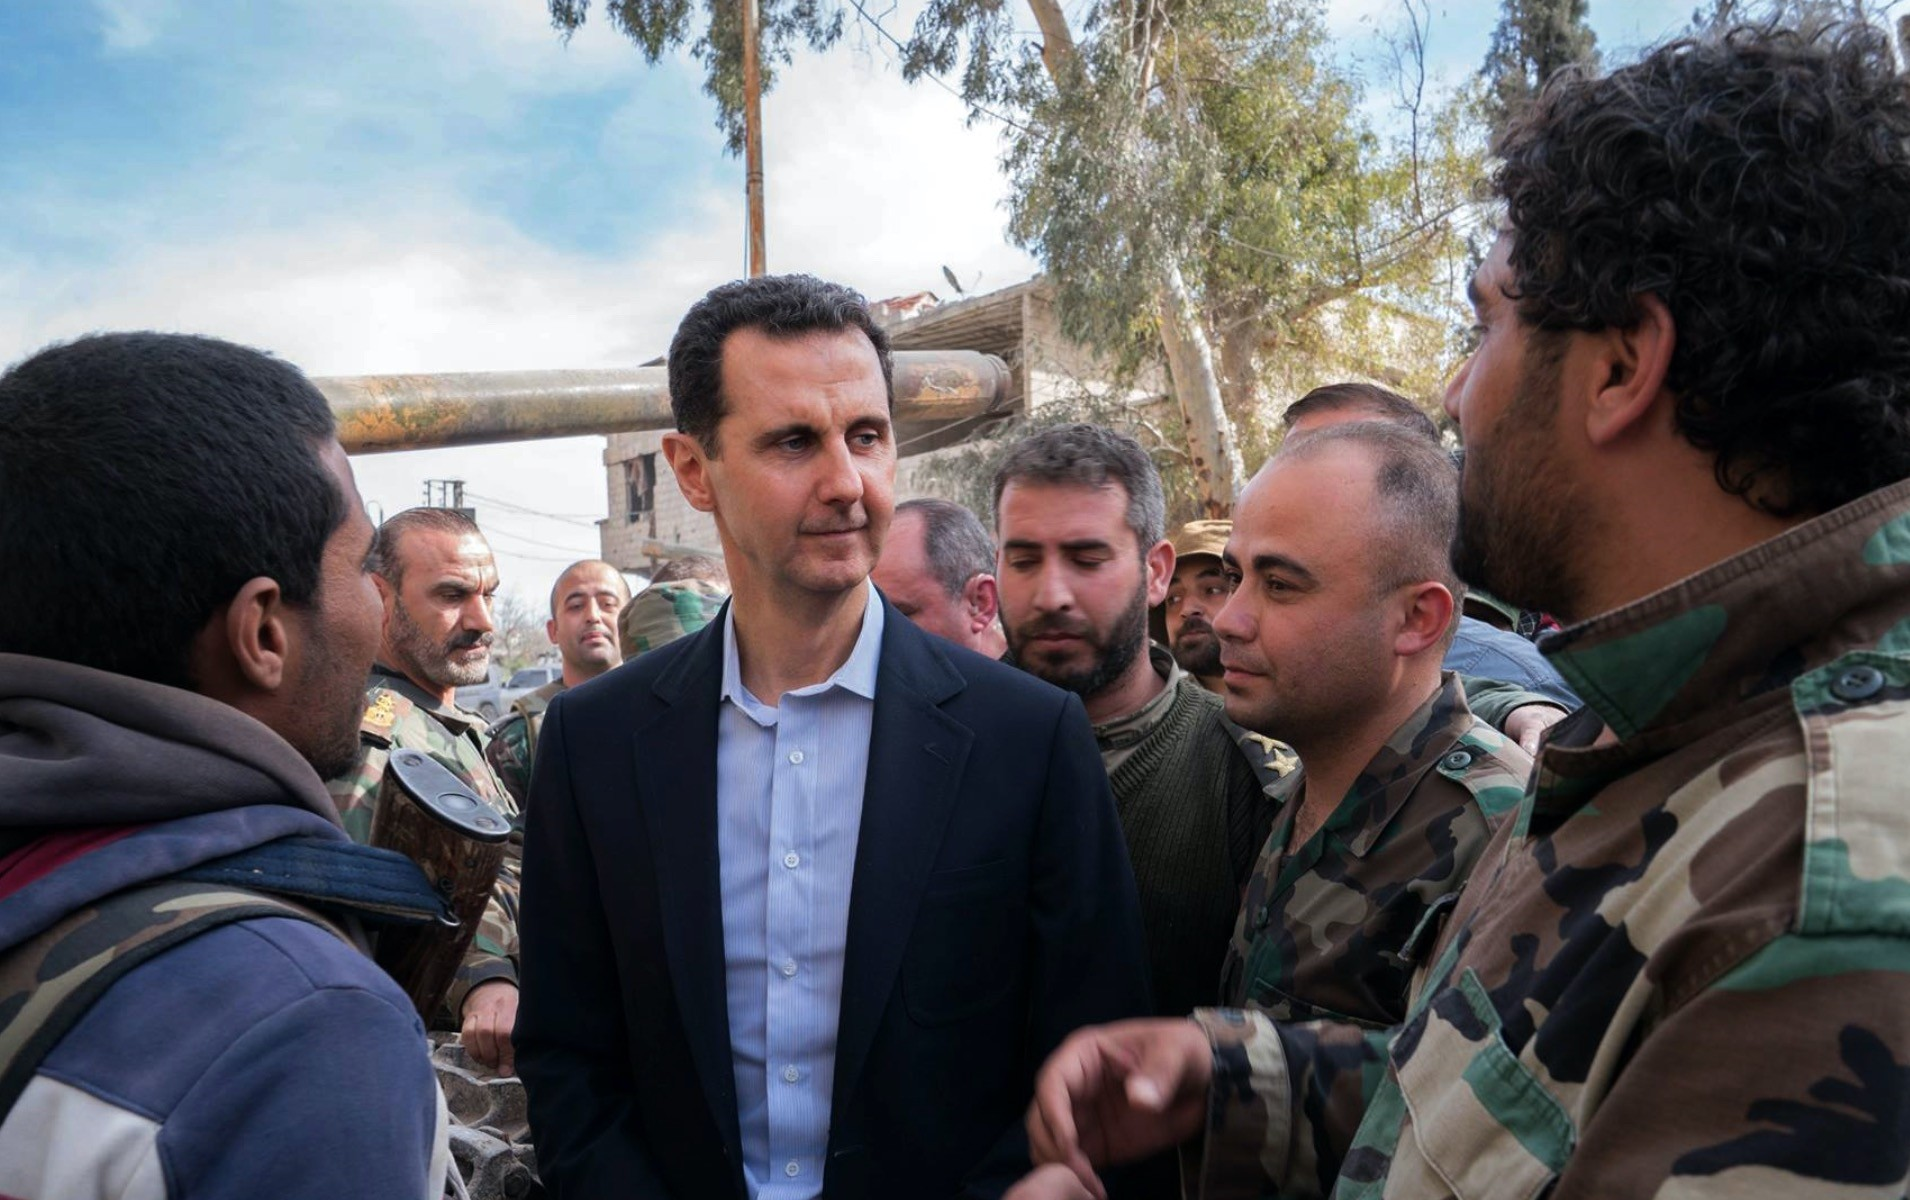 Syrian President Bashar Assad takes a u2018victoryu2019 lap in the former rebel enclave Eastern Ghouta on March 18, 2018.